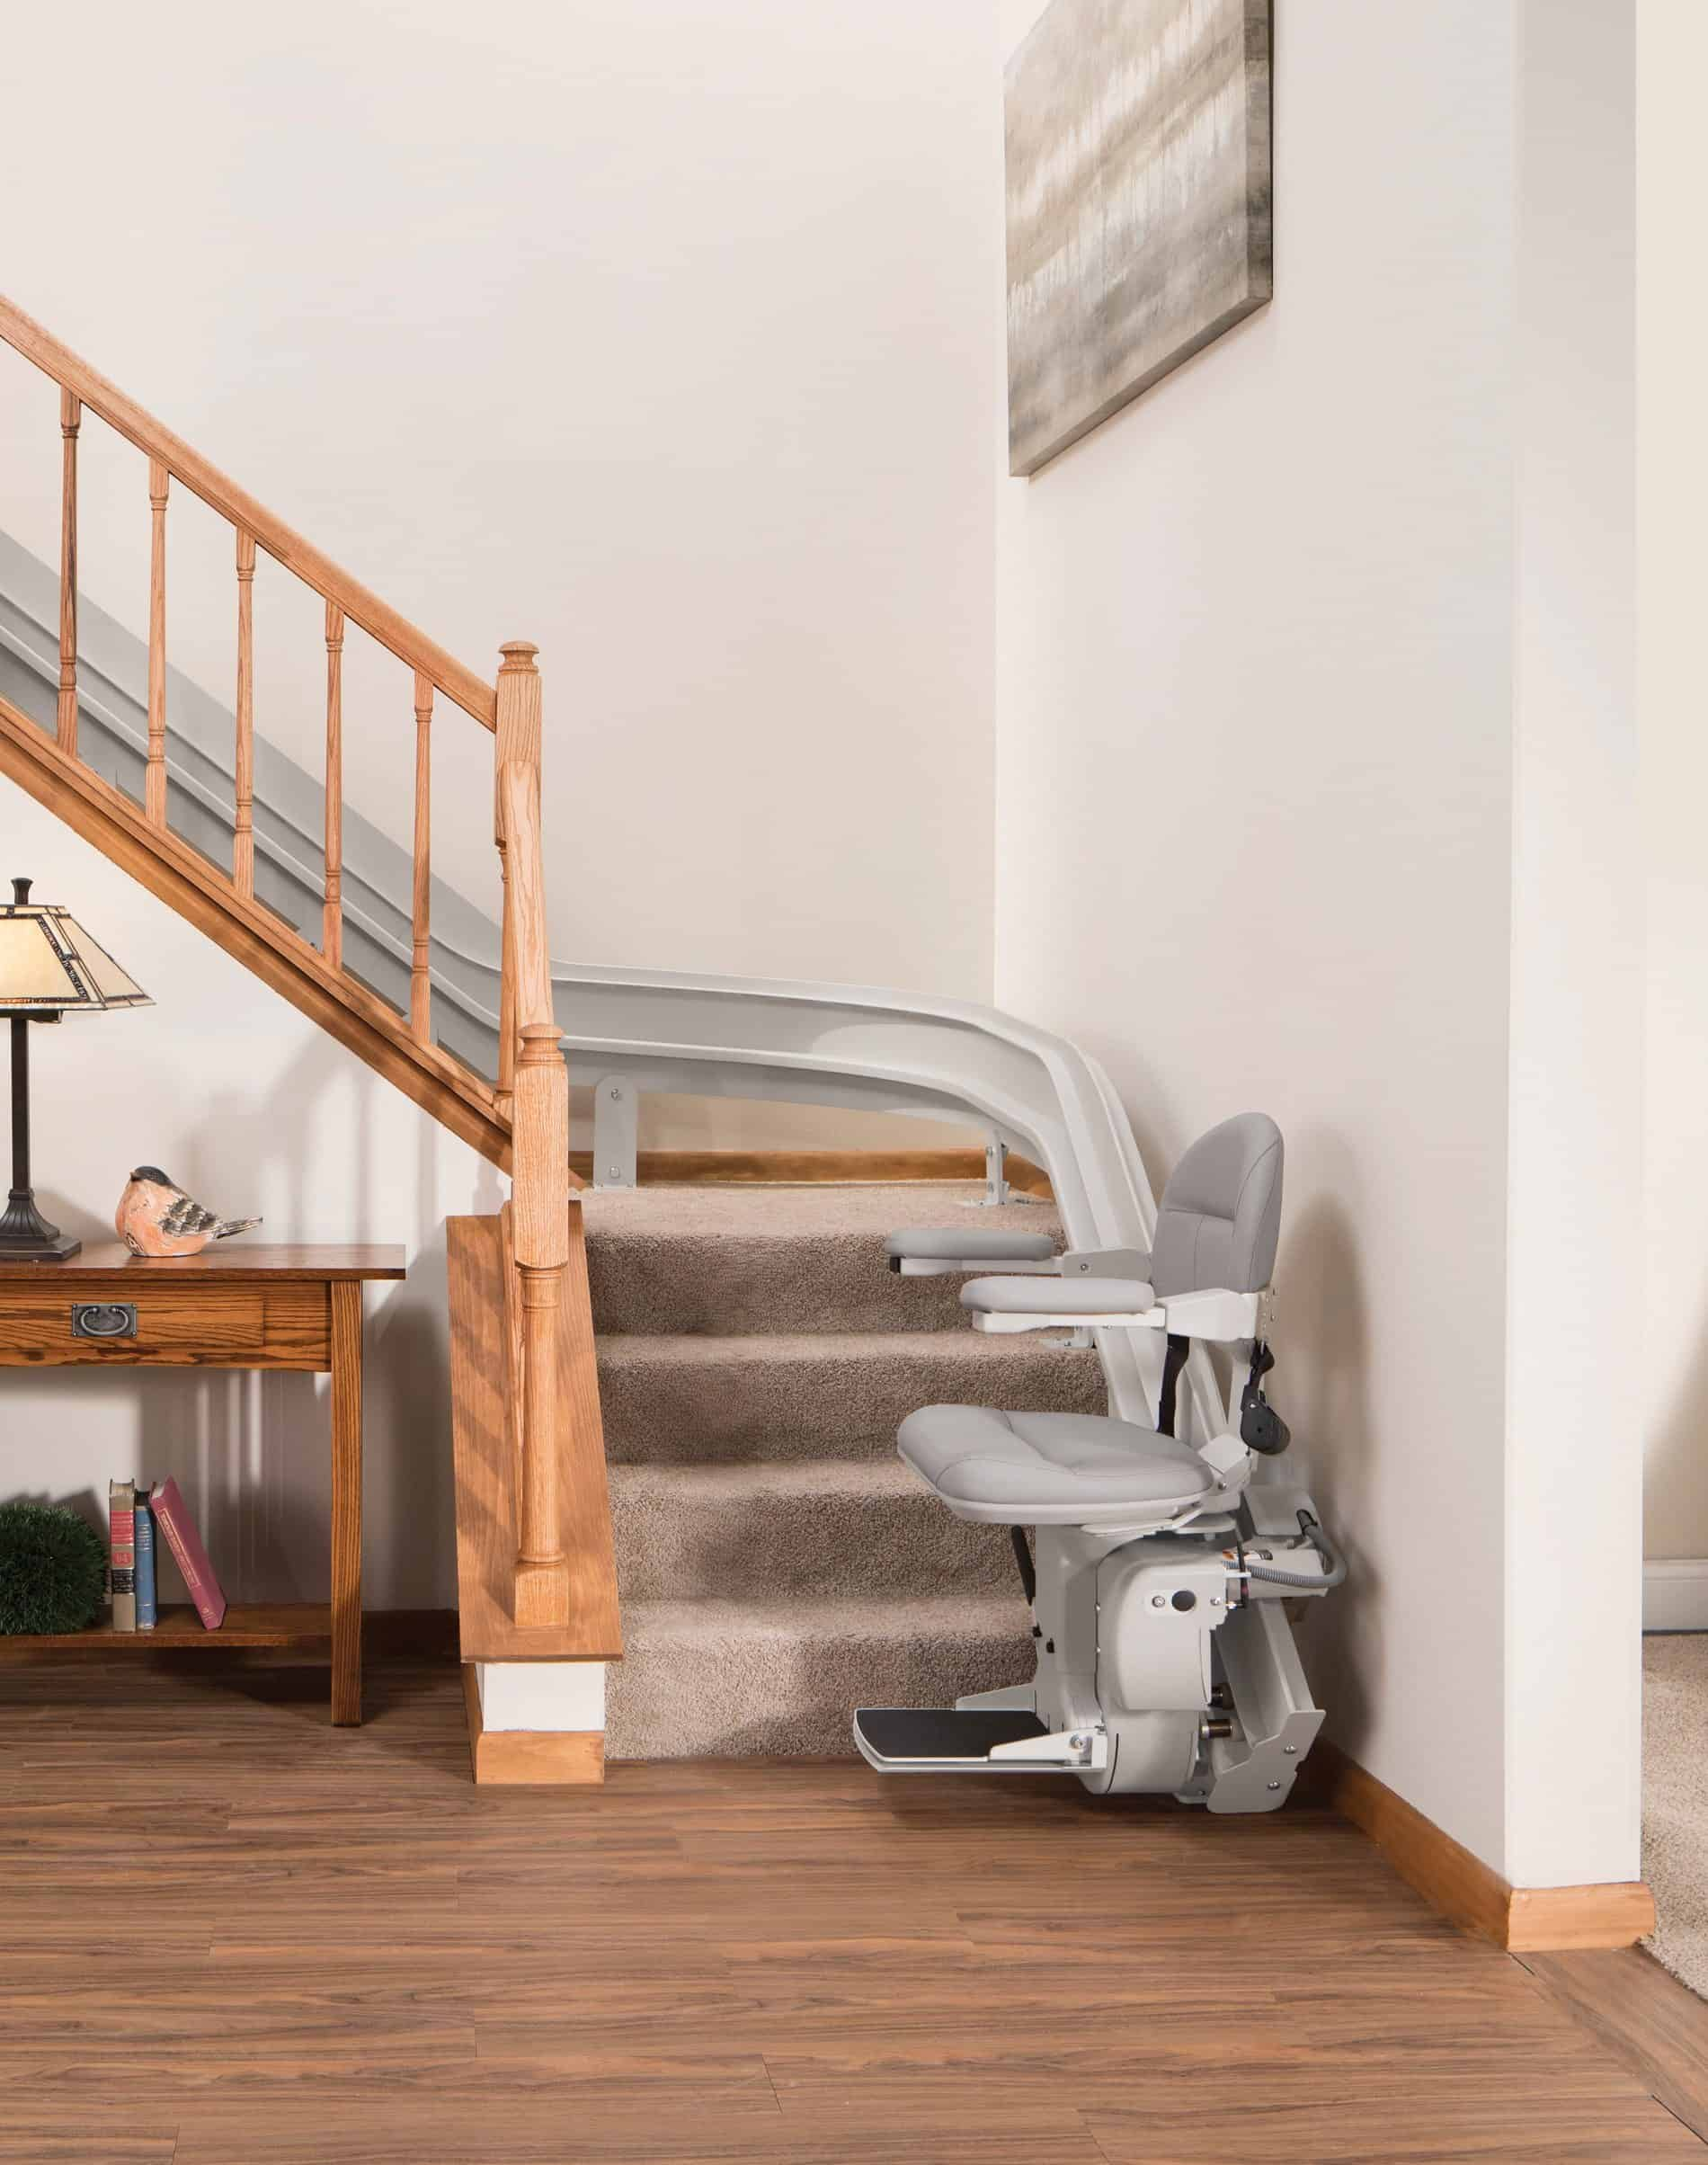 Stairlifts Just Make Good Sense for So Many